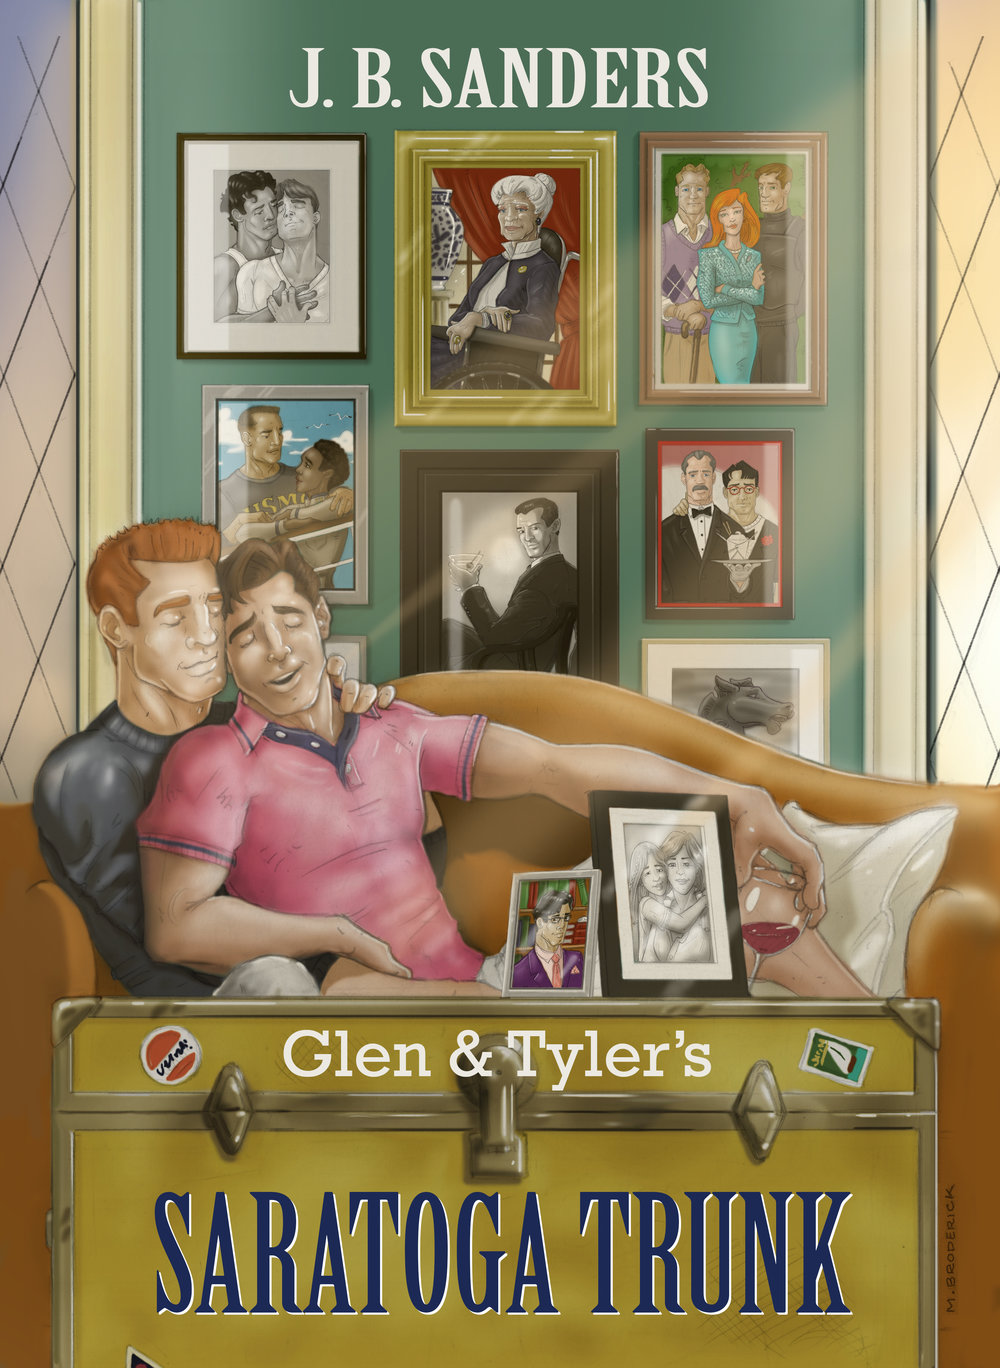 Glen & Tyler's fifth adventure -- coming soon!